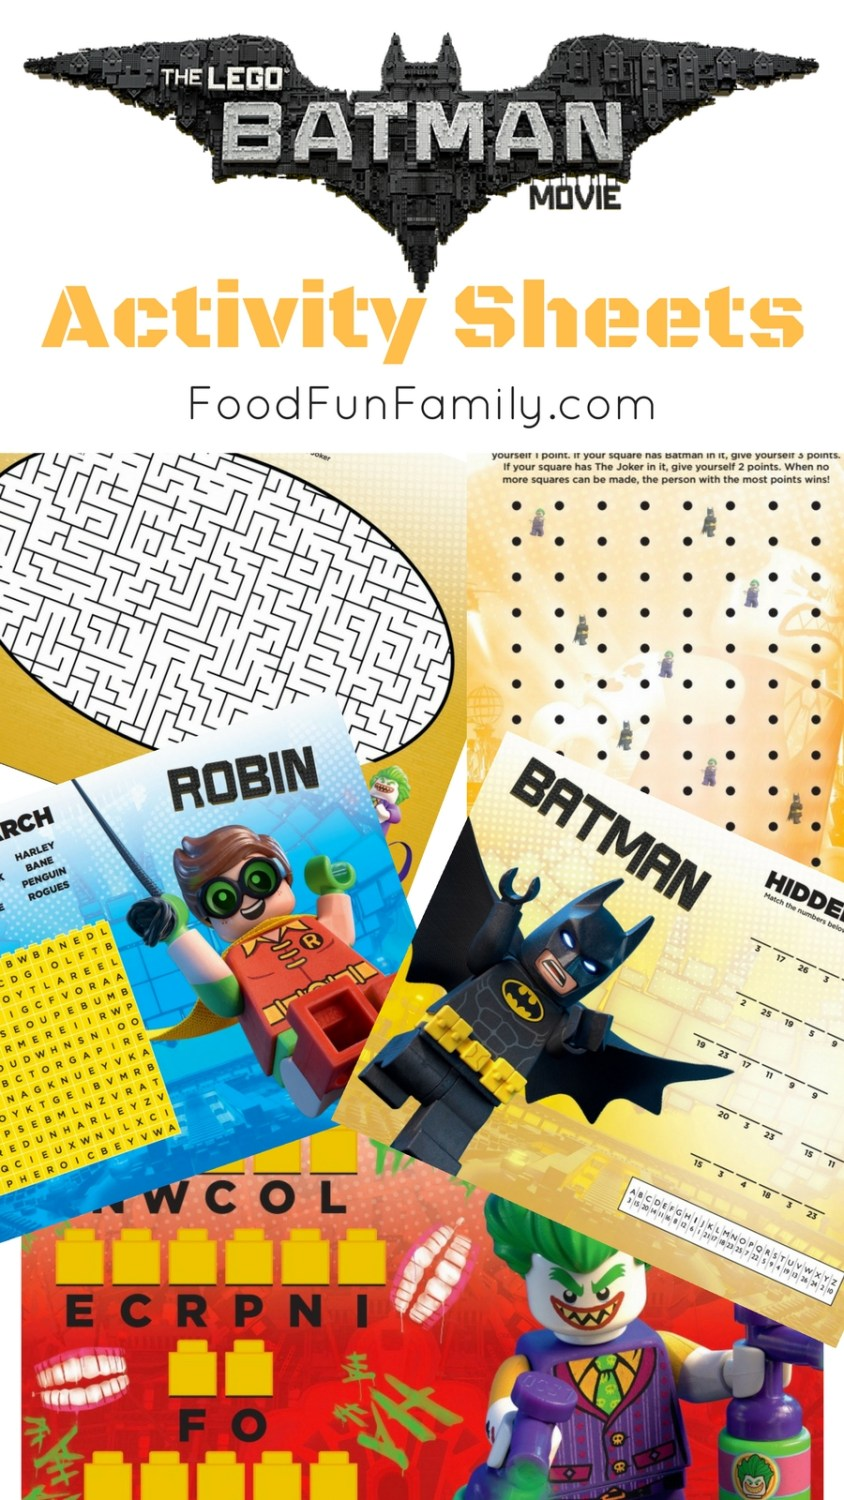 LEGO Batman Activity Sheets